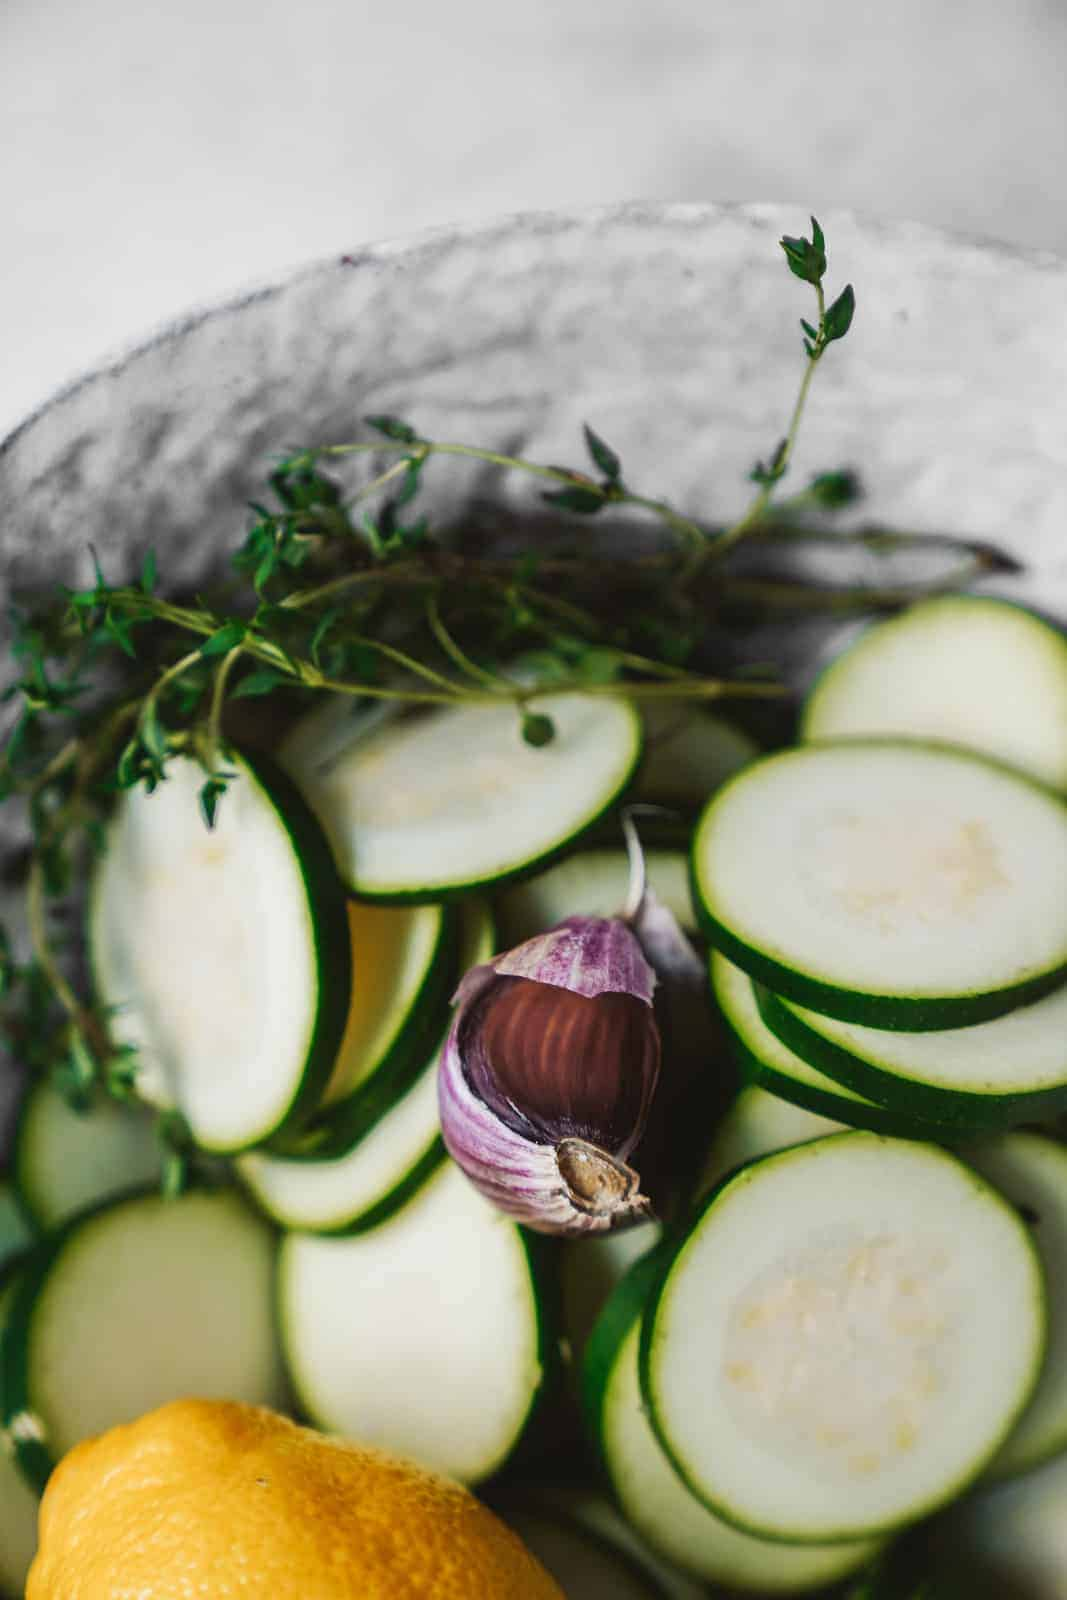 A Quick & Easy Healthy Lemon Herb Baked Zucchini